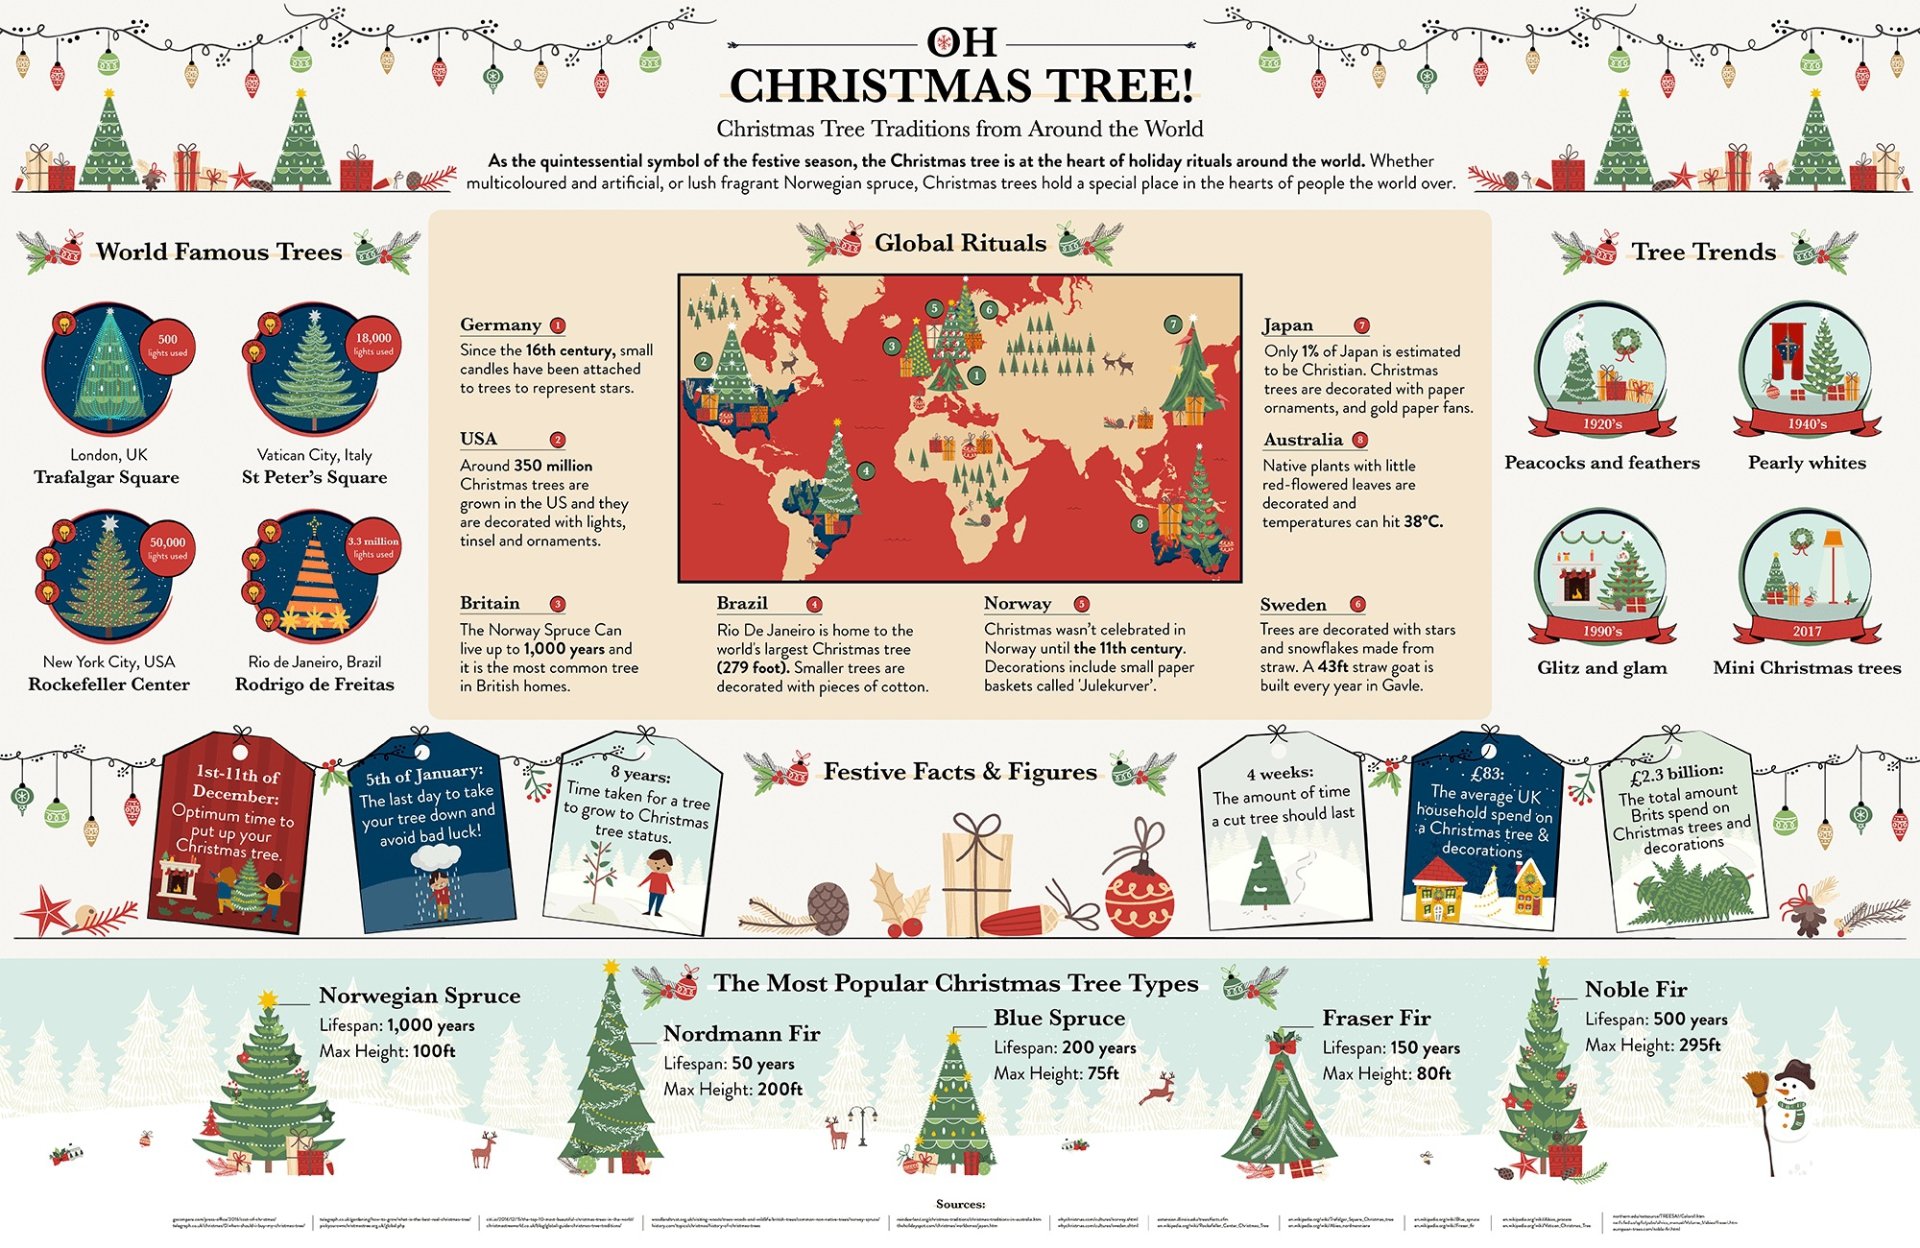 What's The Most Popular Type Of Christmas Tree?